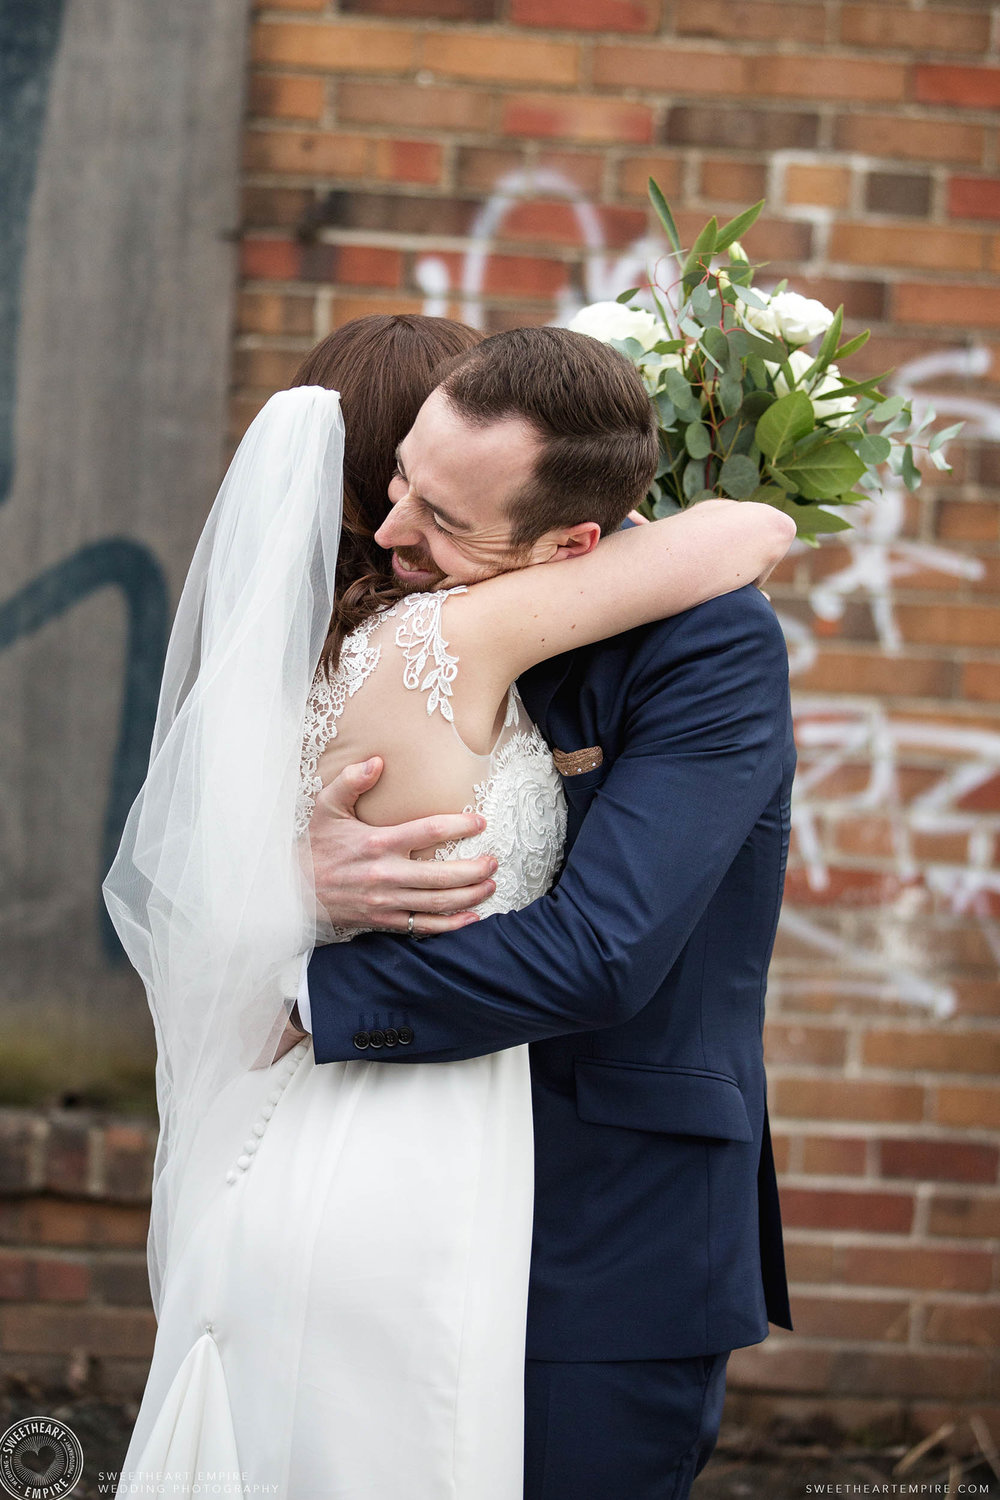 Groom hugs bride after their reveal at District 28 Wedding, Toronto.